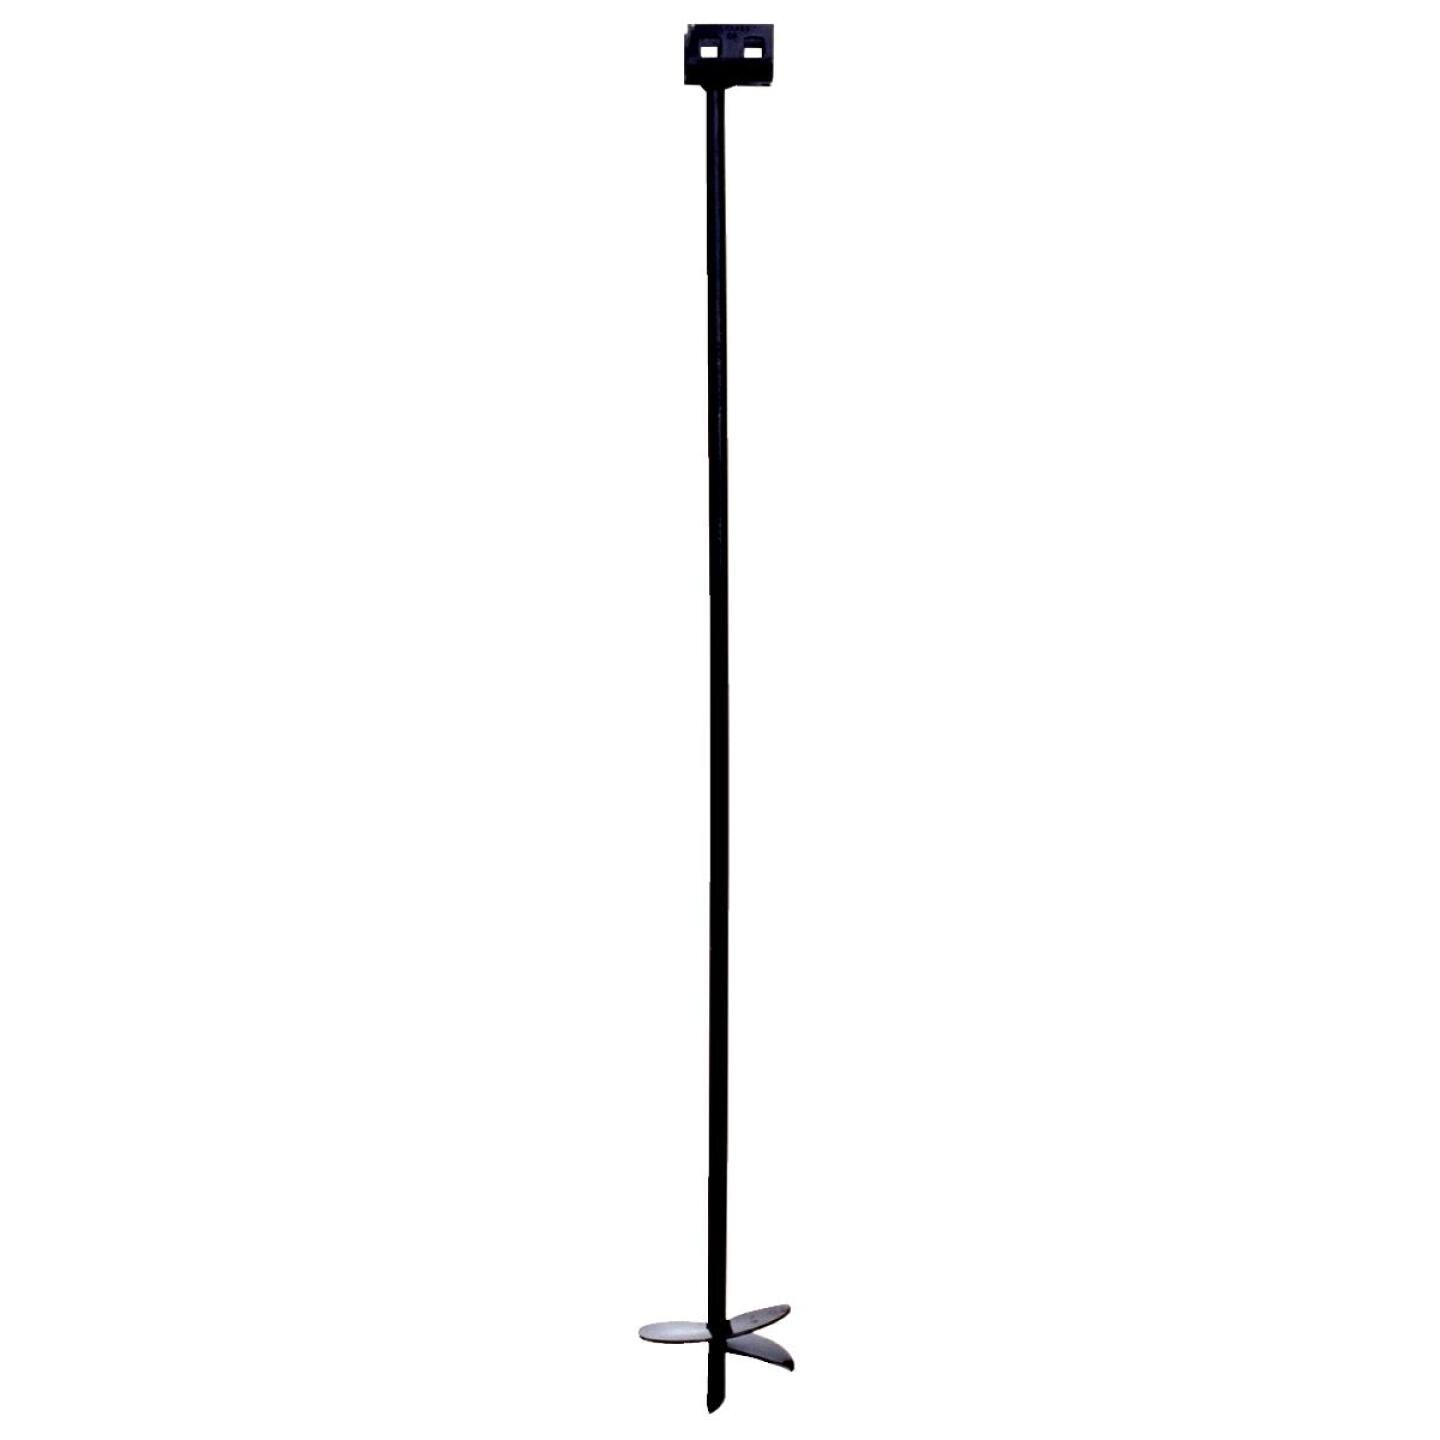 Tie Down 6 In. x 48 In. Black Iron Double Head Earth Anchor Image 1